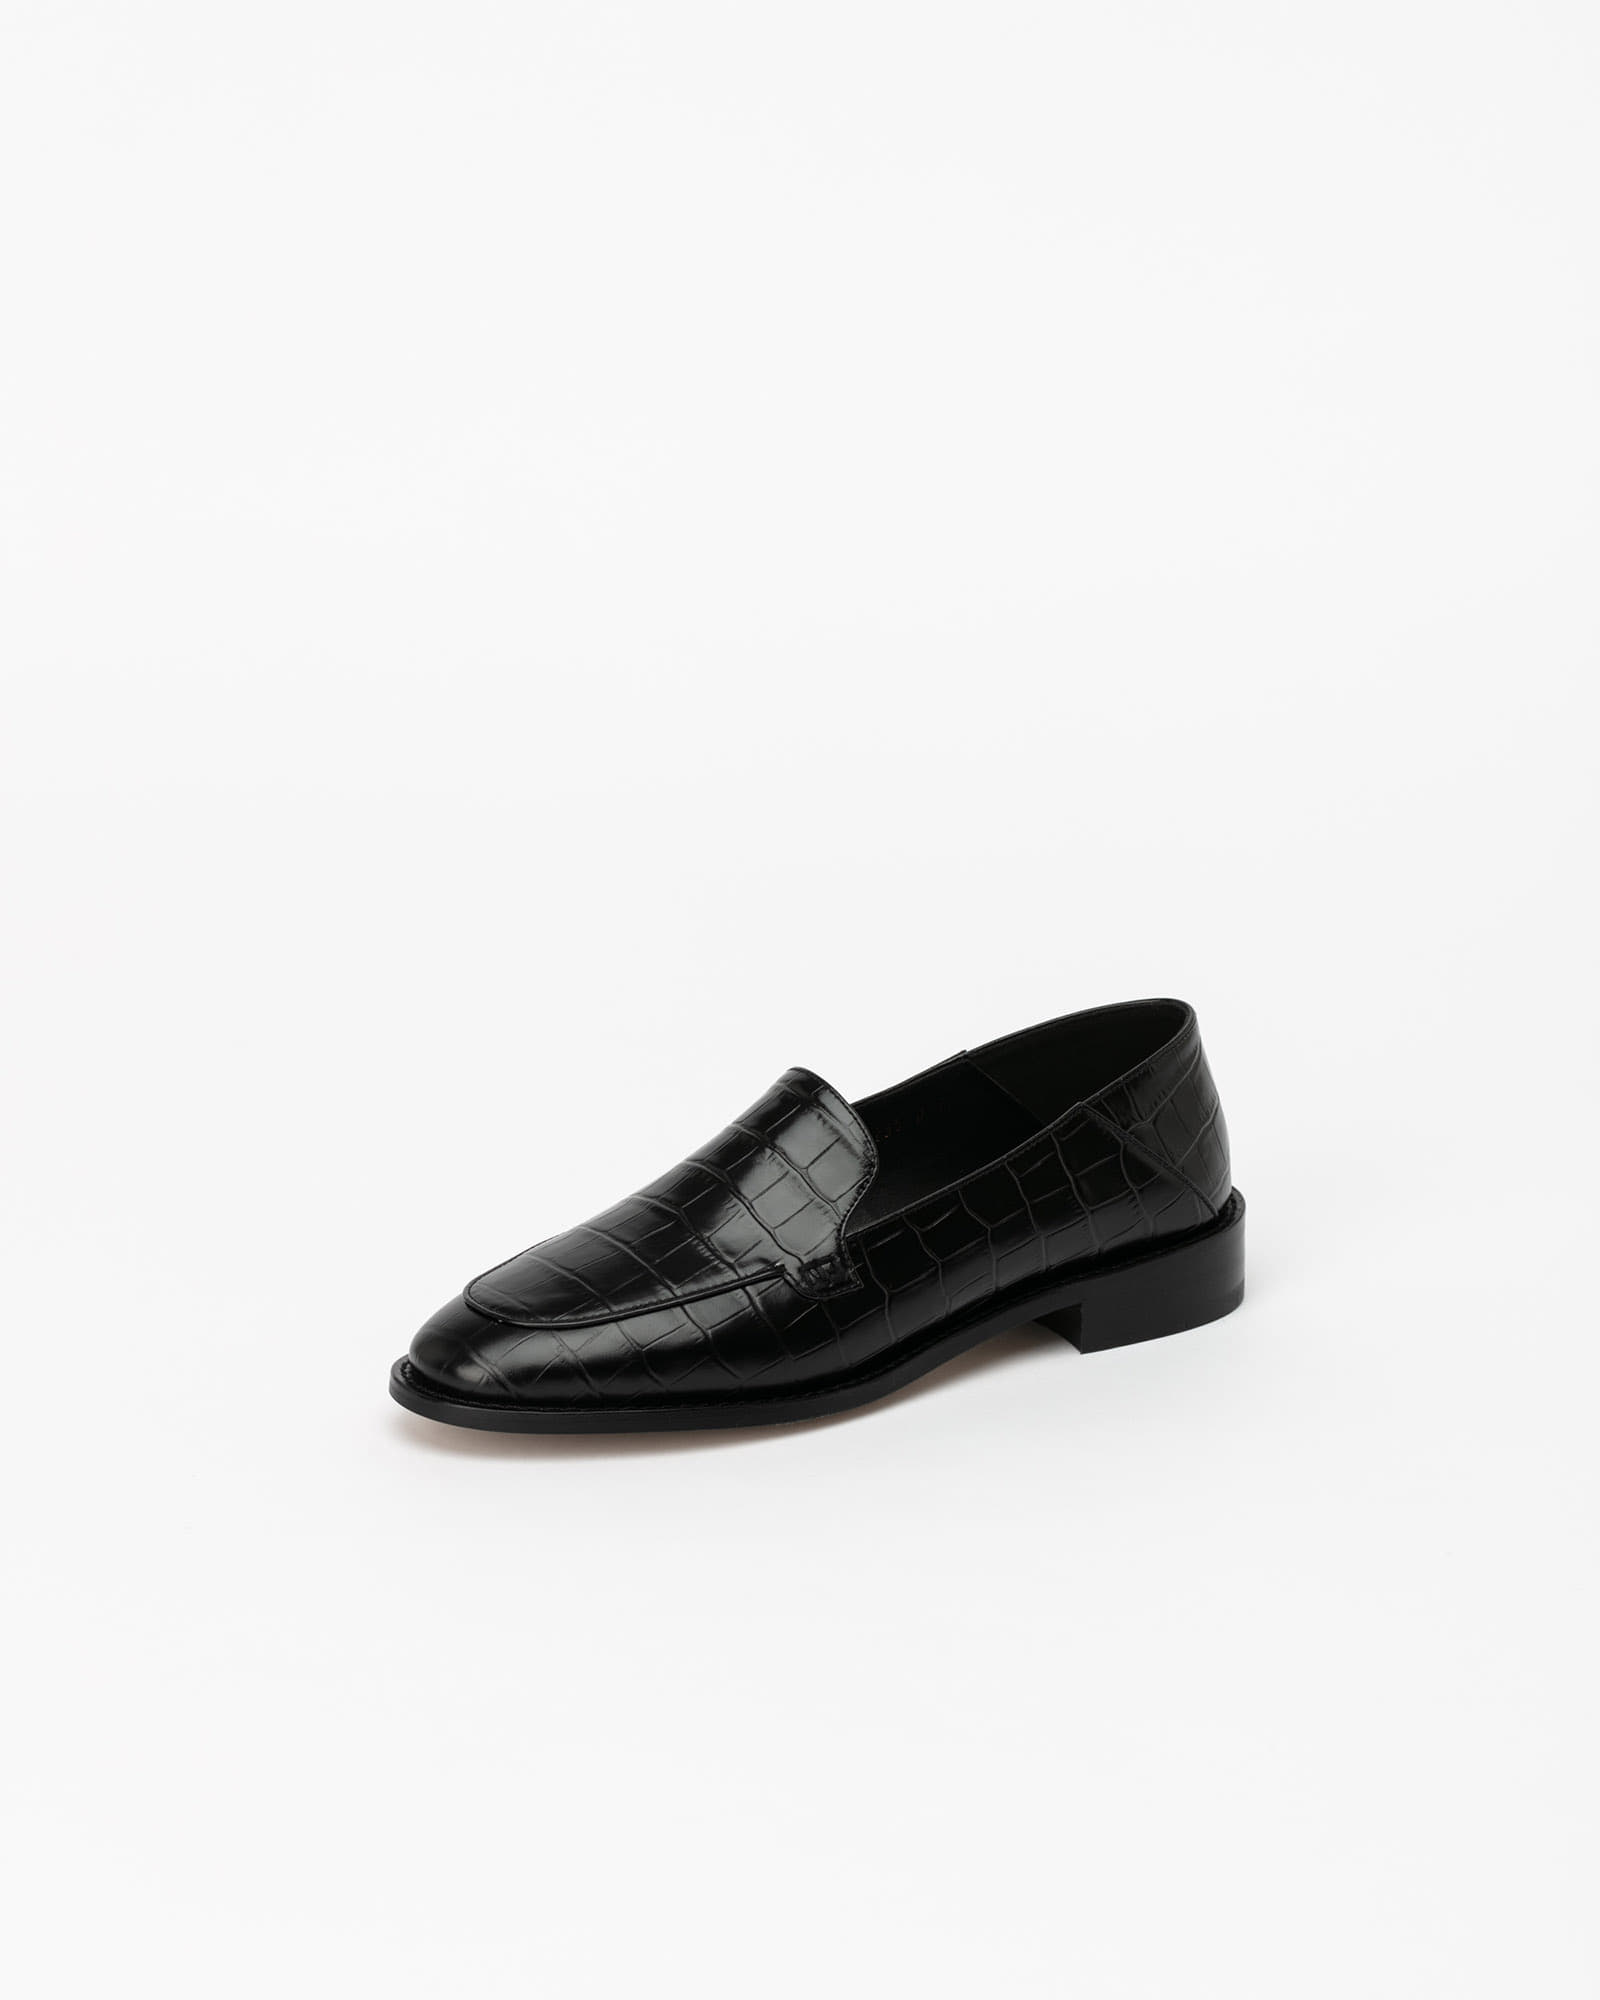 Nuance Loafers in Black Croco Prints